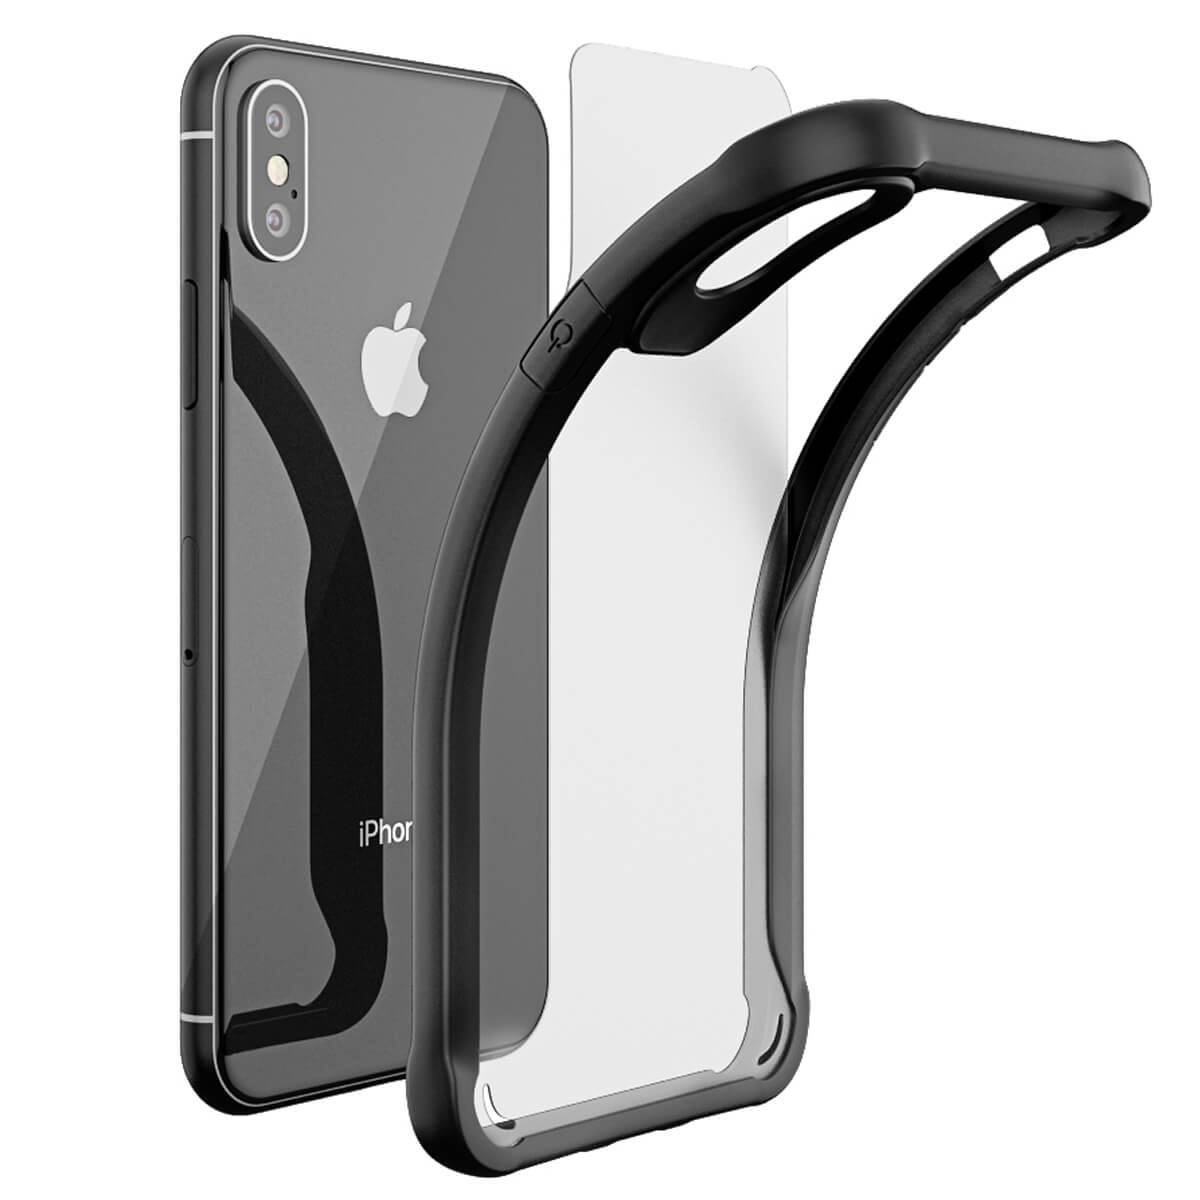 Thin-Shockproof-Case-For-Apple-iPhone-X-8-7-Plus-6s-Clear-Hard-Bumper-TPU-Cover thumbnail 24